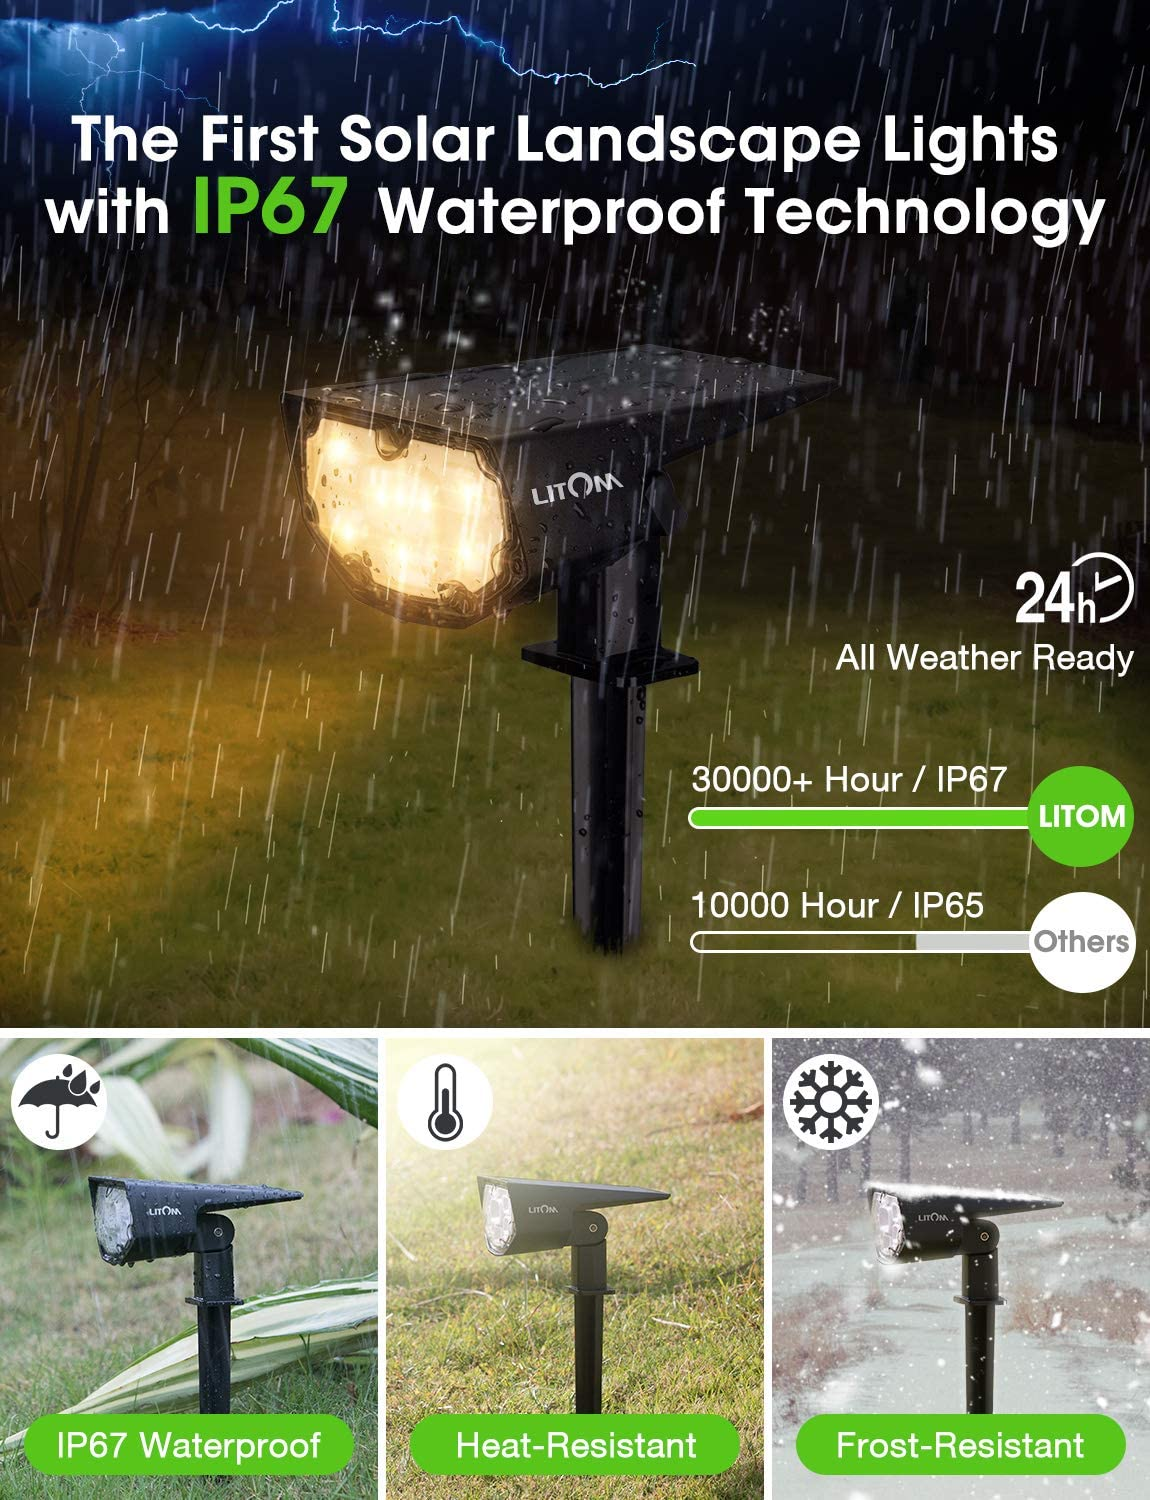 LITOM Multicolored 12 LED Solar Landscape Spotlights IP67 Waterproof Solar Powered Wall Lights 2-in-1 Wireless Outdoor Solar Landscaping Light for Yard Garden Driveway Porch Walkway Pool Patio 2 Pack